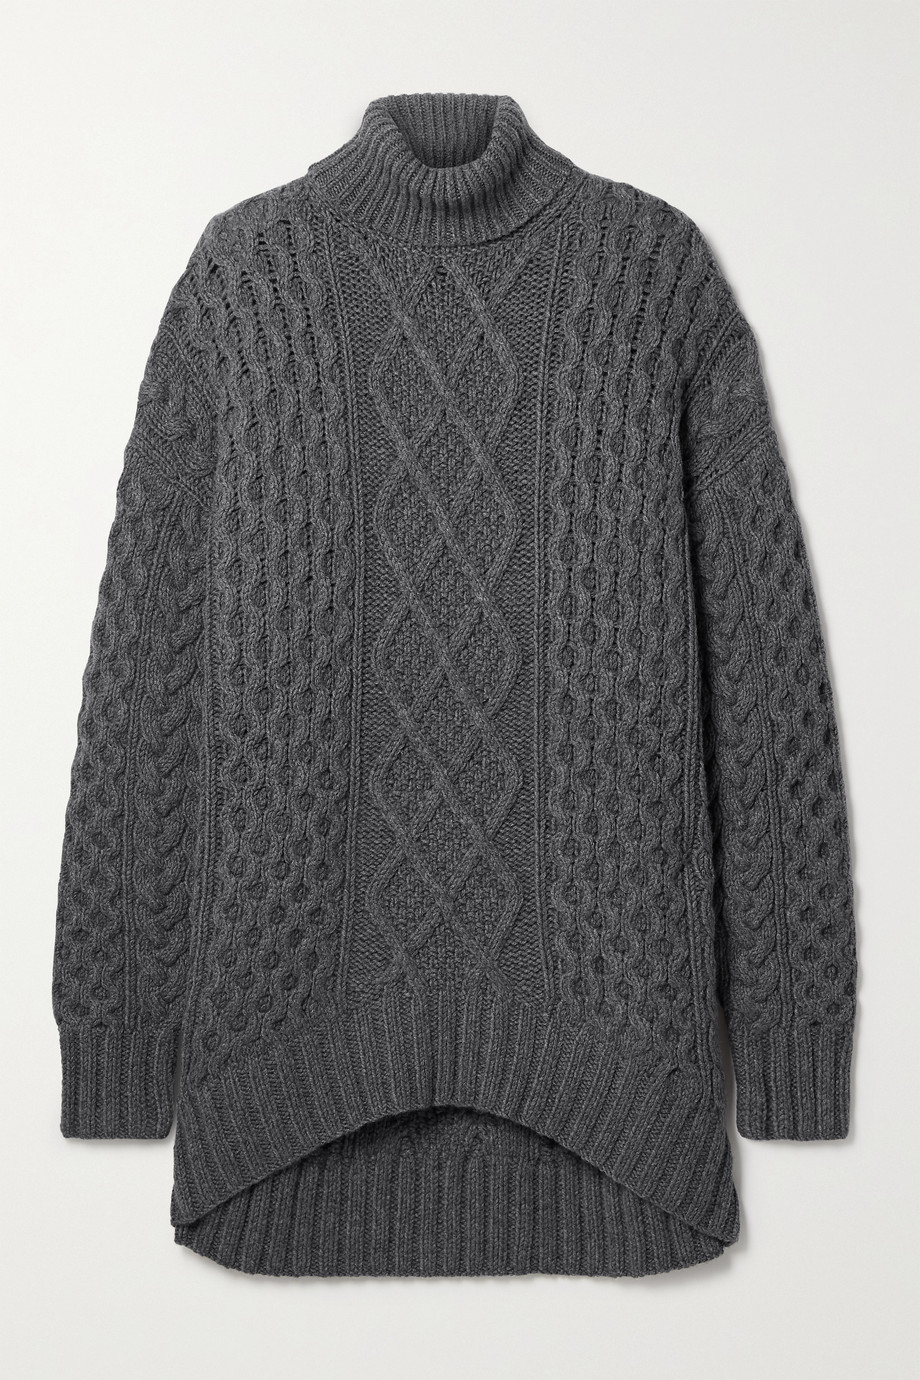 Michael Kors Collection Aran oversized cable-knit cashmere turtleneck sweater